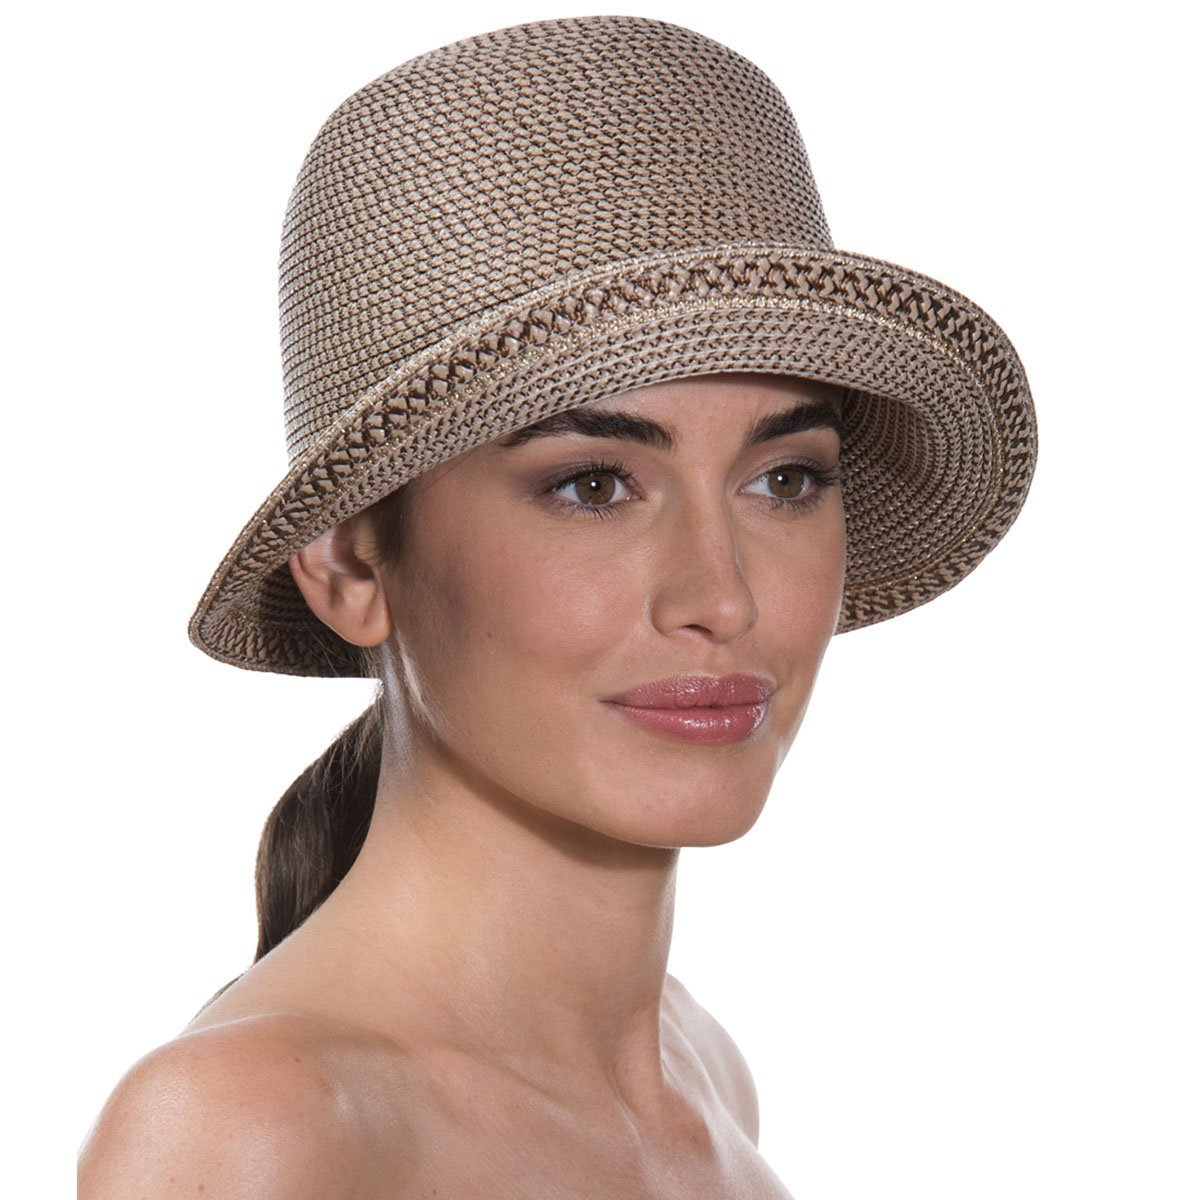 Eric Javits Luxury Fashion Designer Women's Headwear Hat - Squishee Bucket - Bark